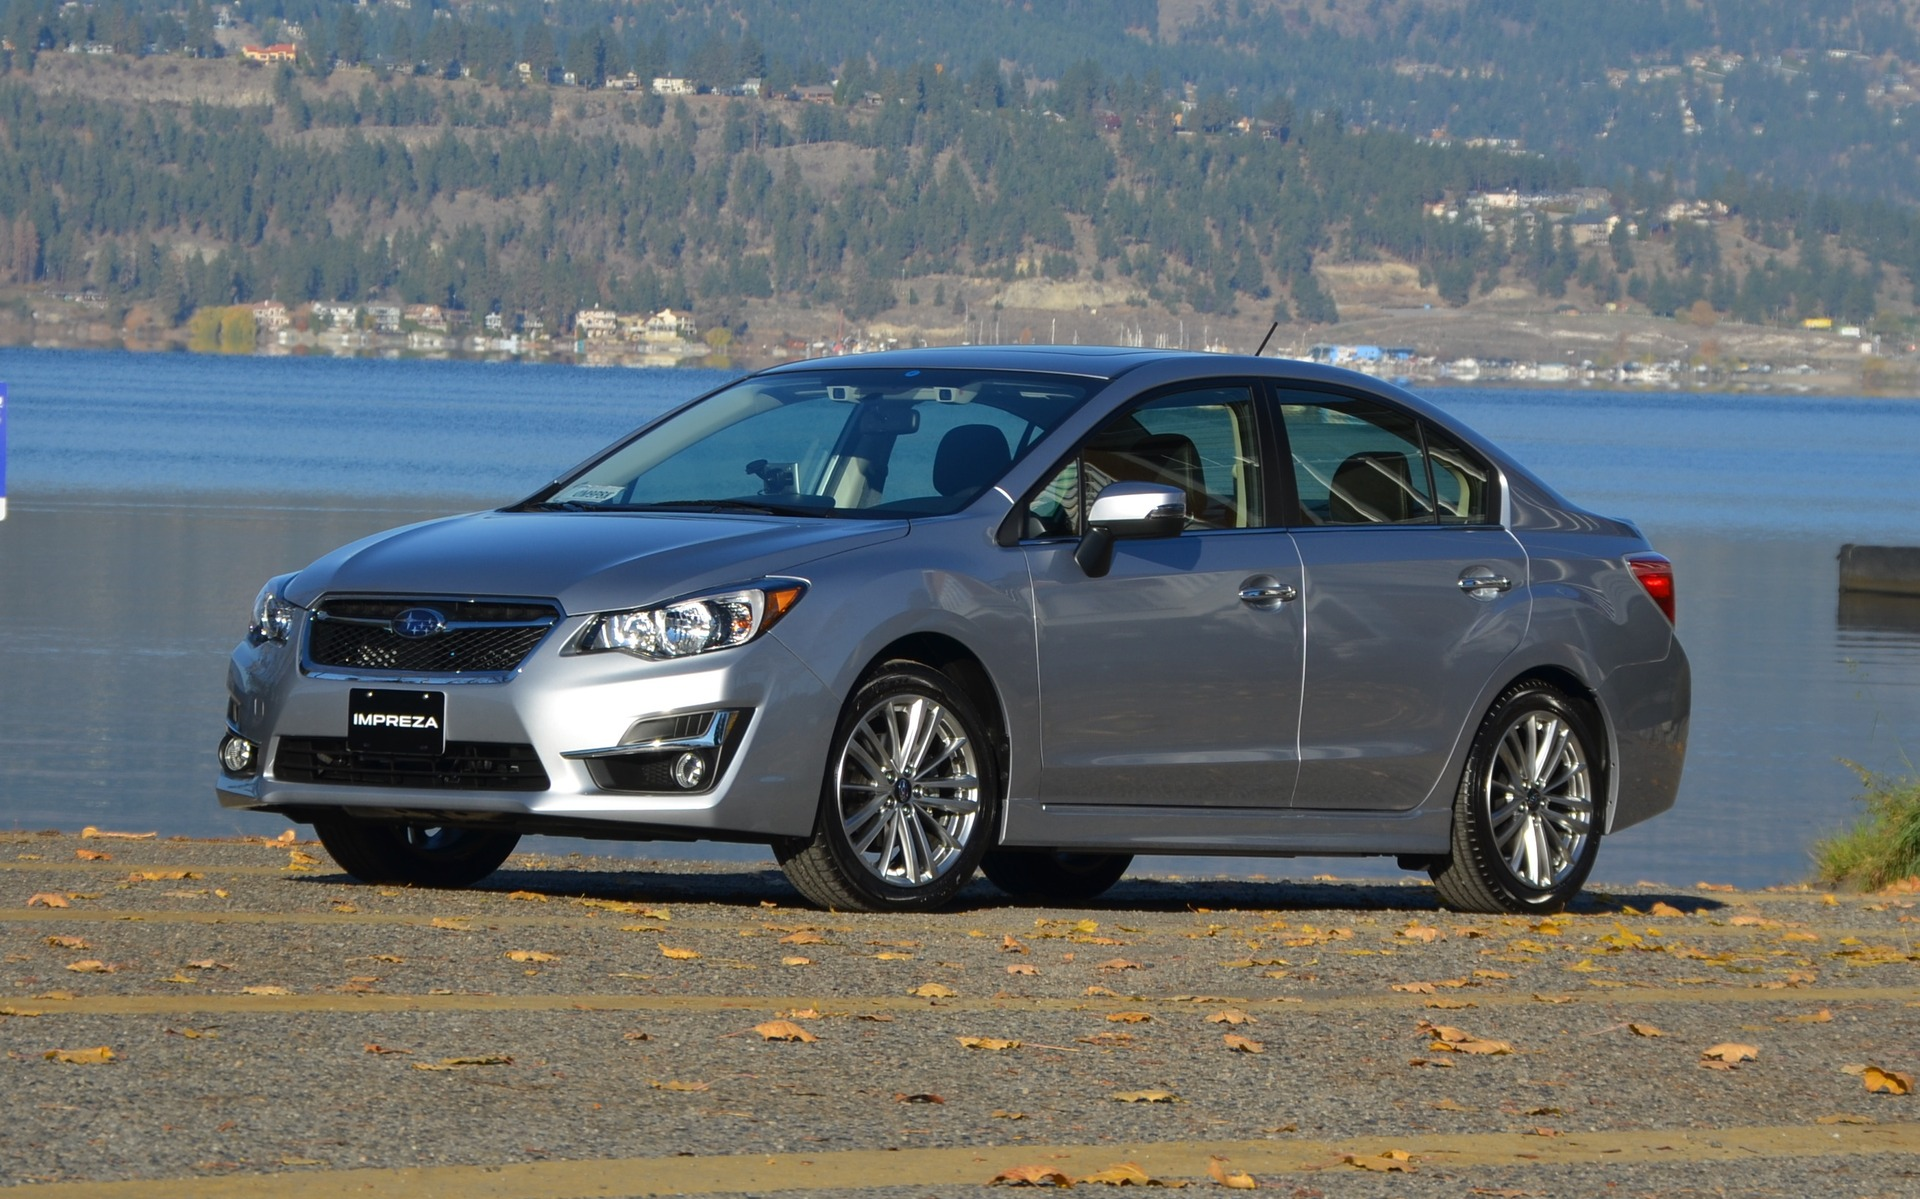 2015 subaru impreza thank goodness for winter review the car guide. Black Bedroom Furniture Sets. Home Design Ideas